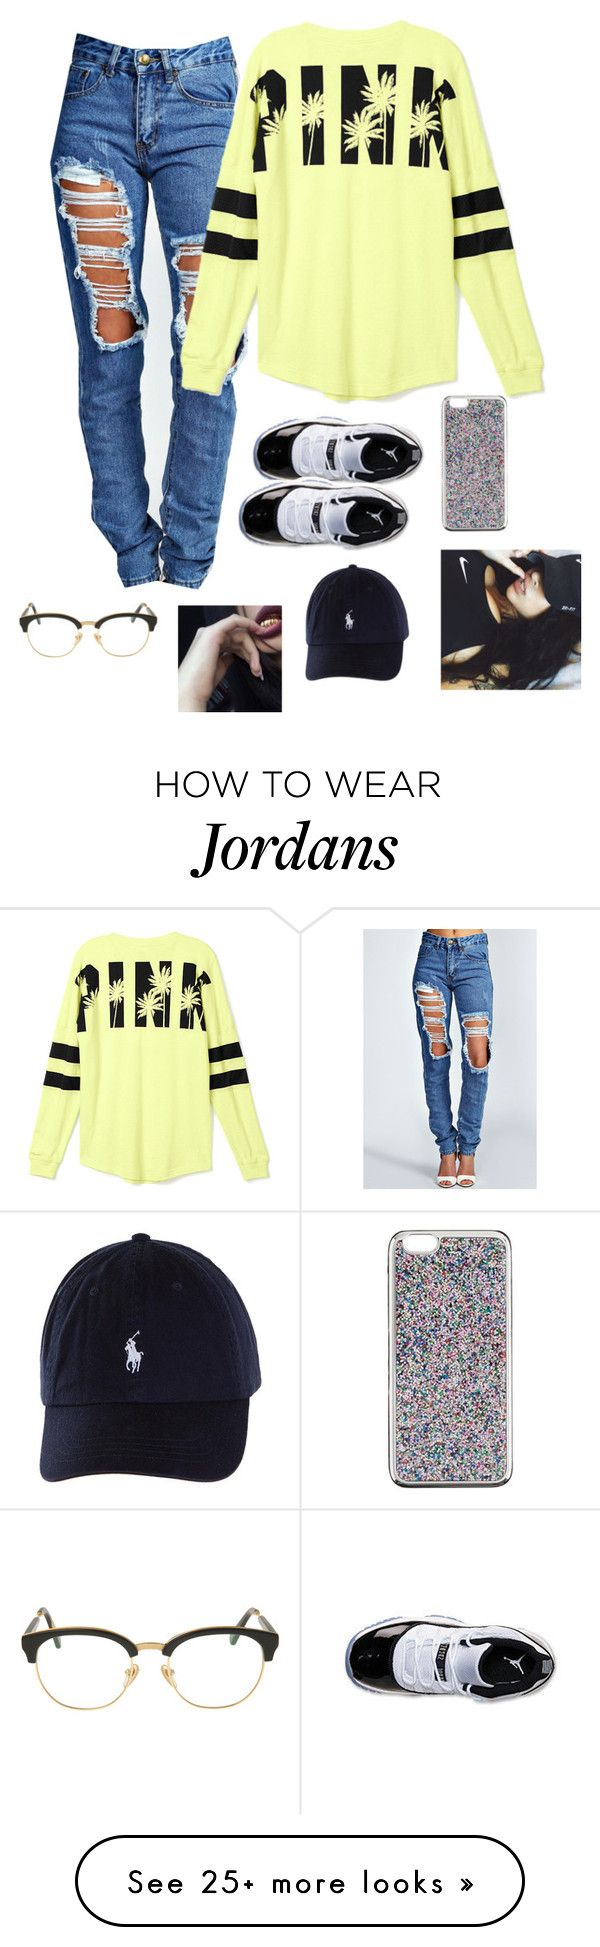 """""""Untitled #122"""" by baby-boogaloo on Polyvore featuring Boohoo, Victoria's Secret, Retrò, J.Crew, xO Design and Sunday Somewhere"""